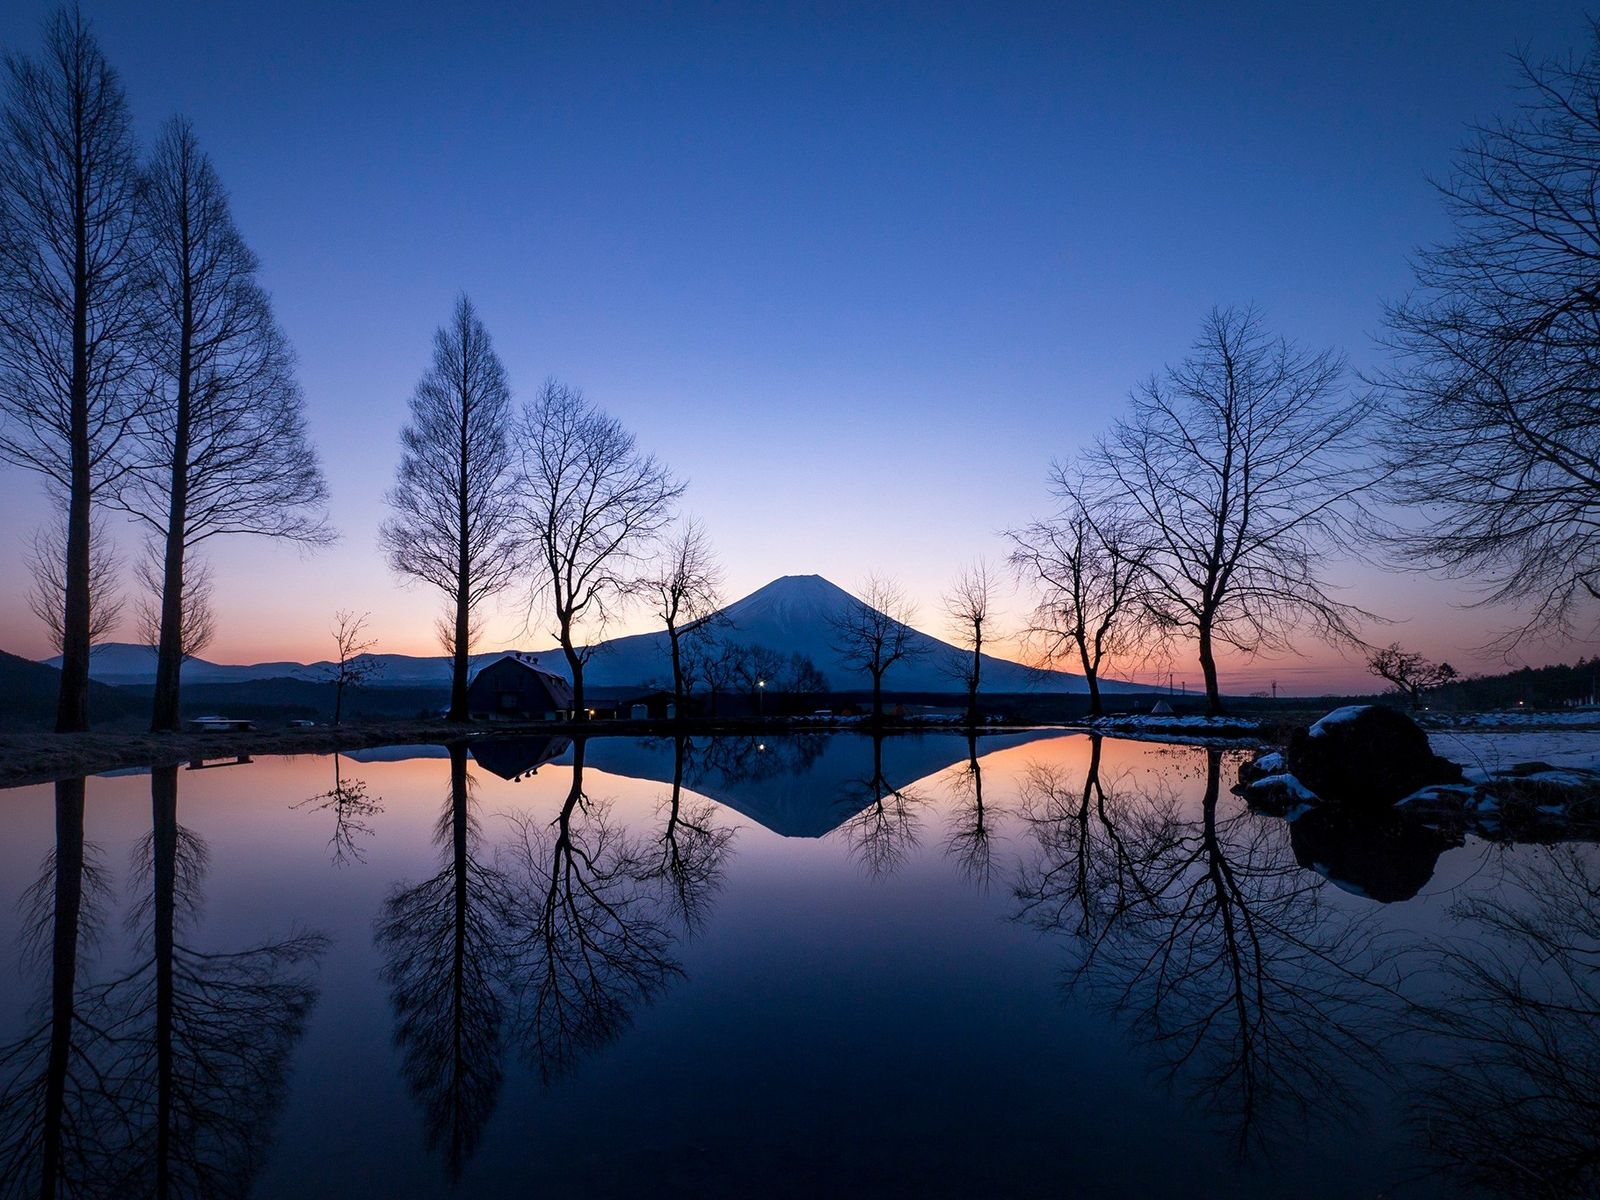 A purple sky at dawn reflects off of a small pond in front of Mount Fuji.